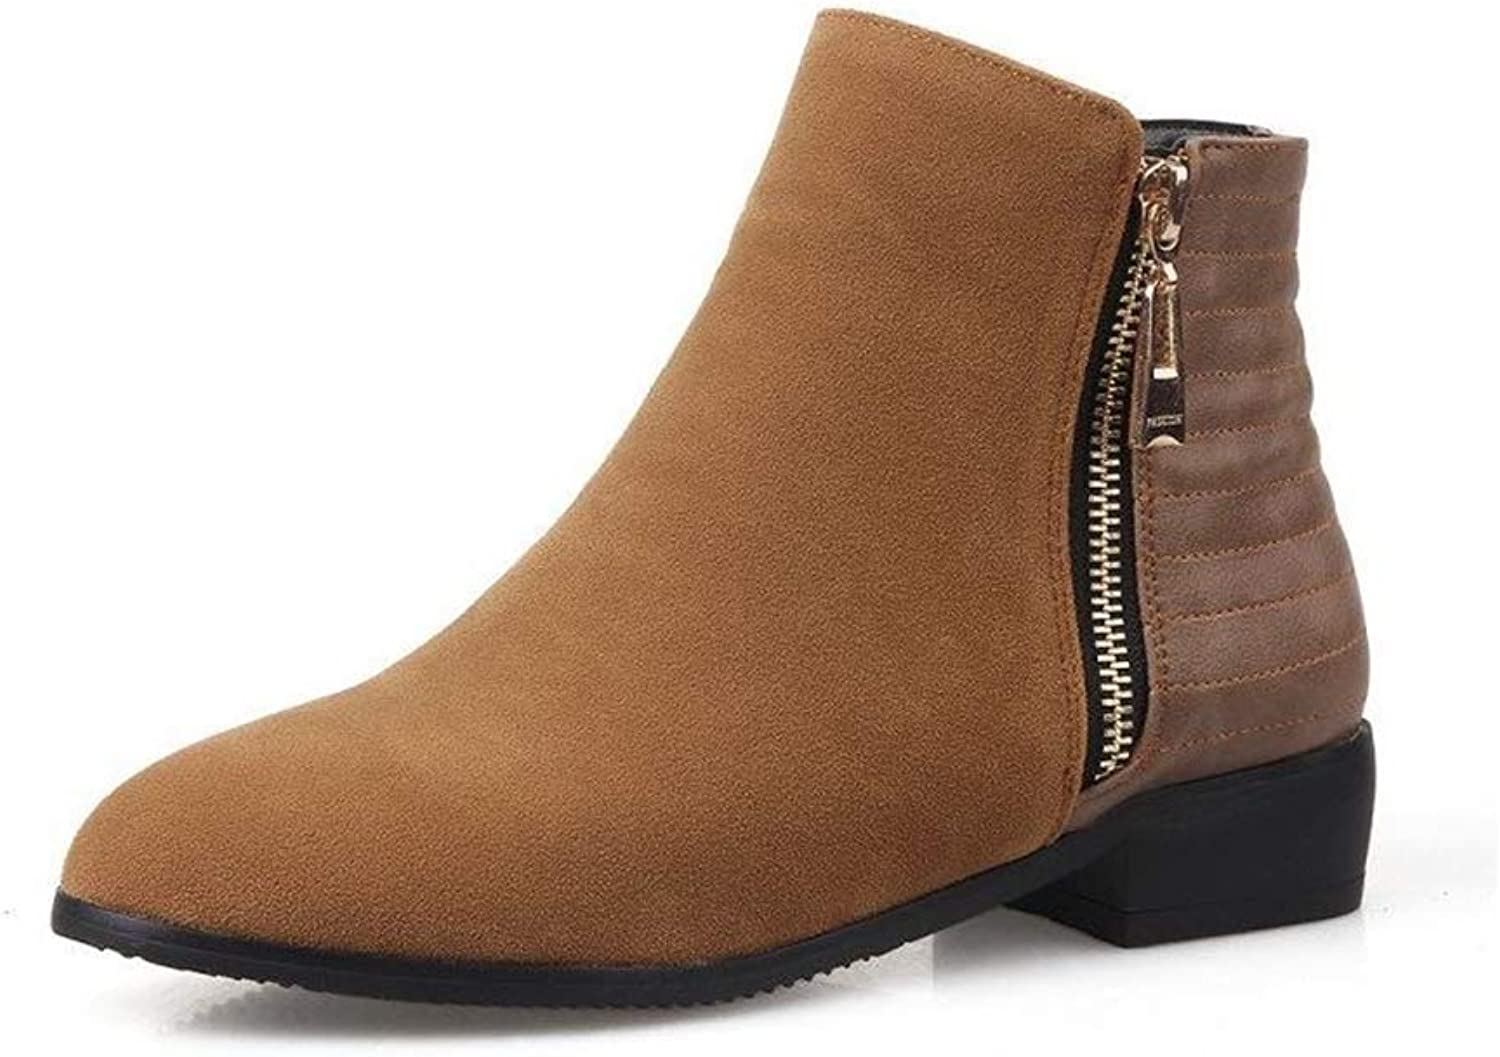 Edv0d2v266 Women Buckle Ankle Boots Fashion Winter Round Toe Low Chunky Heel Dress Booties